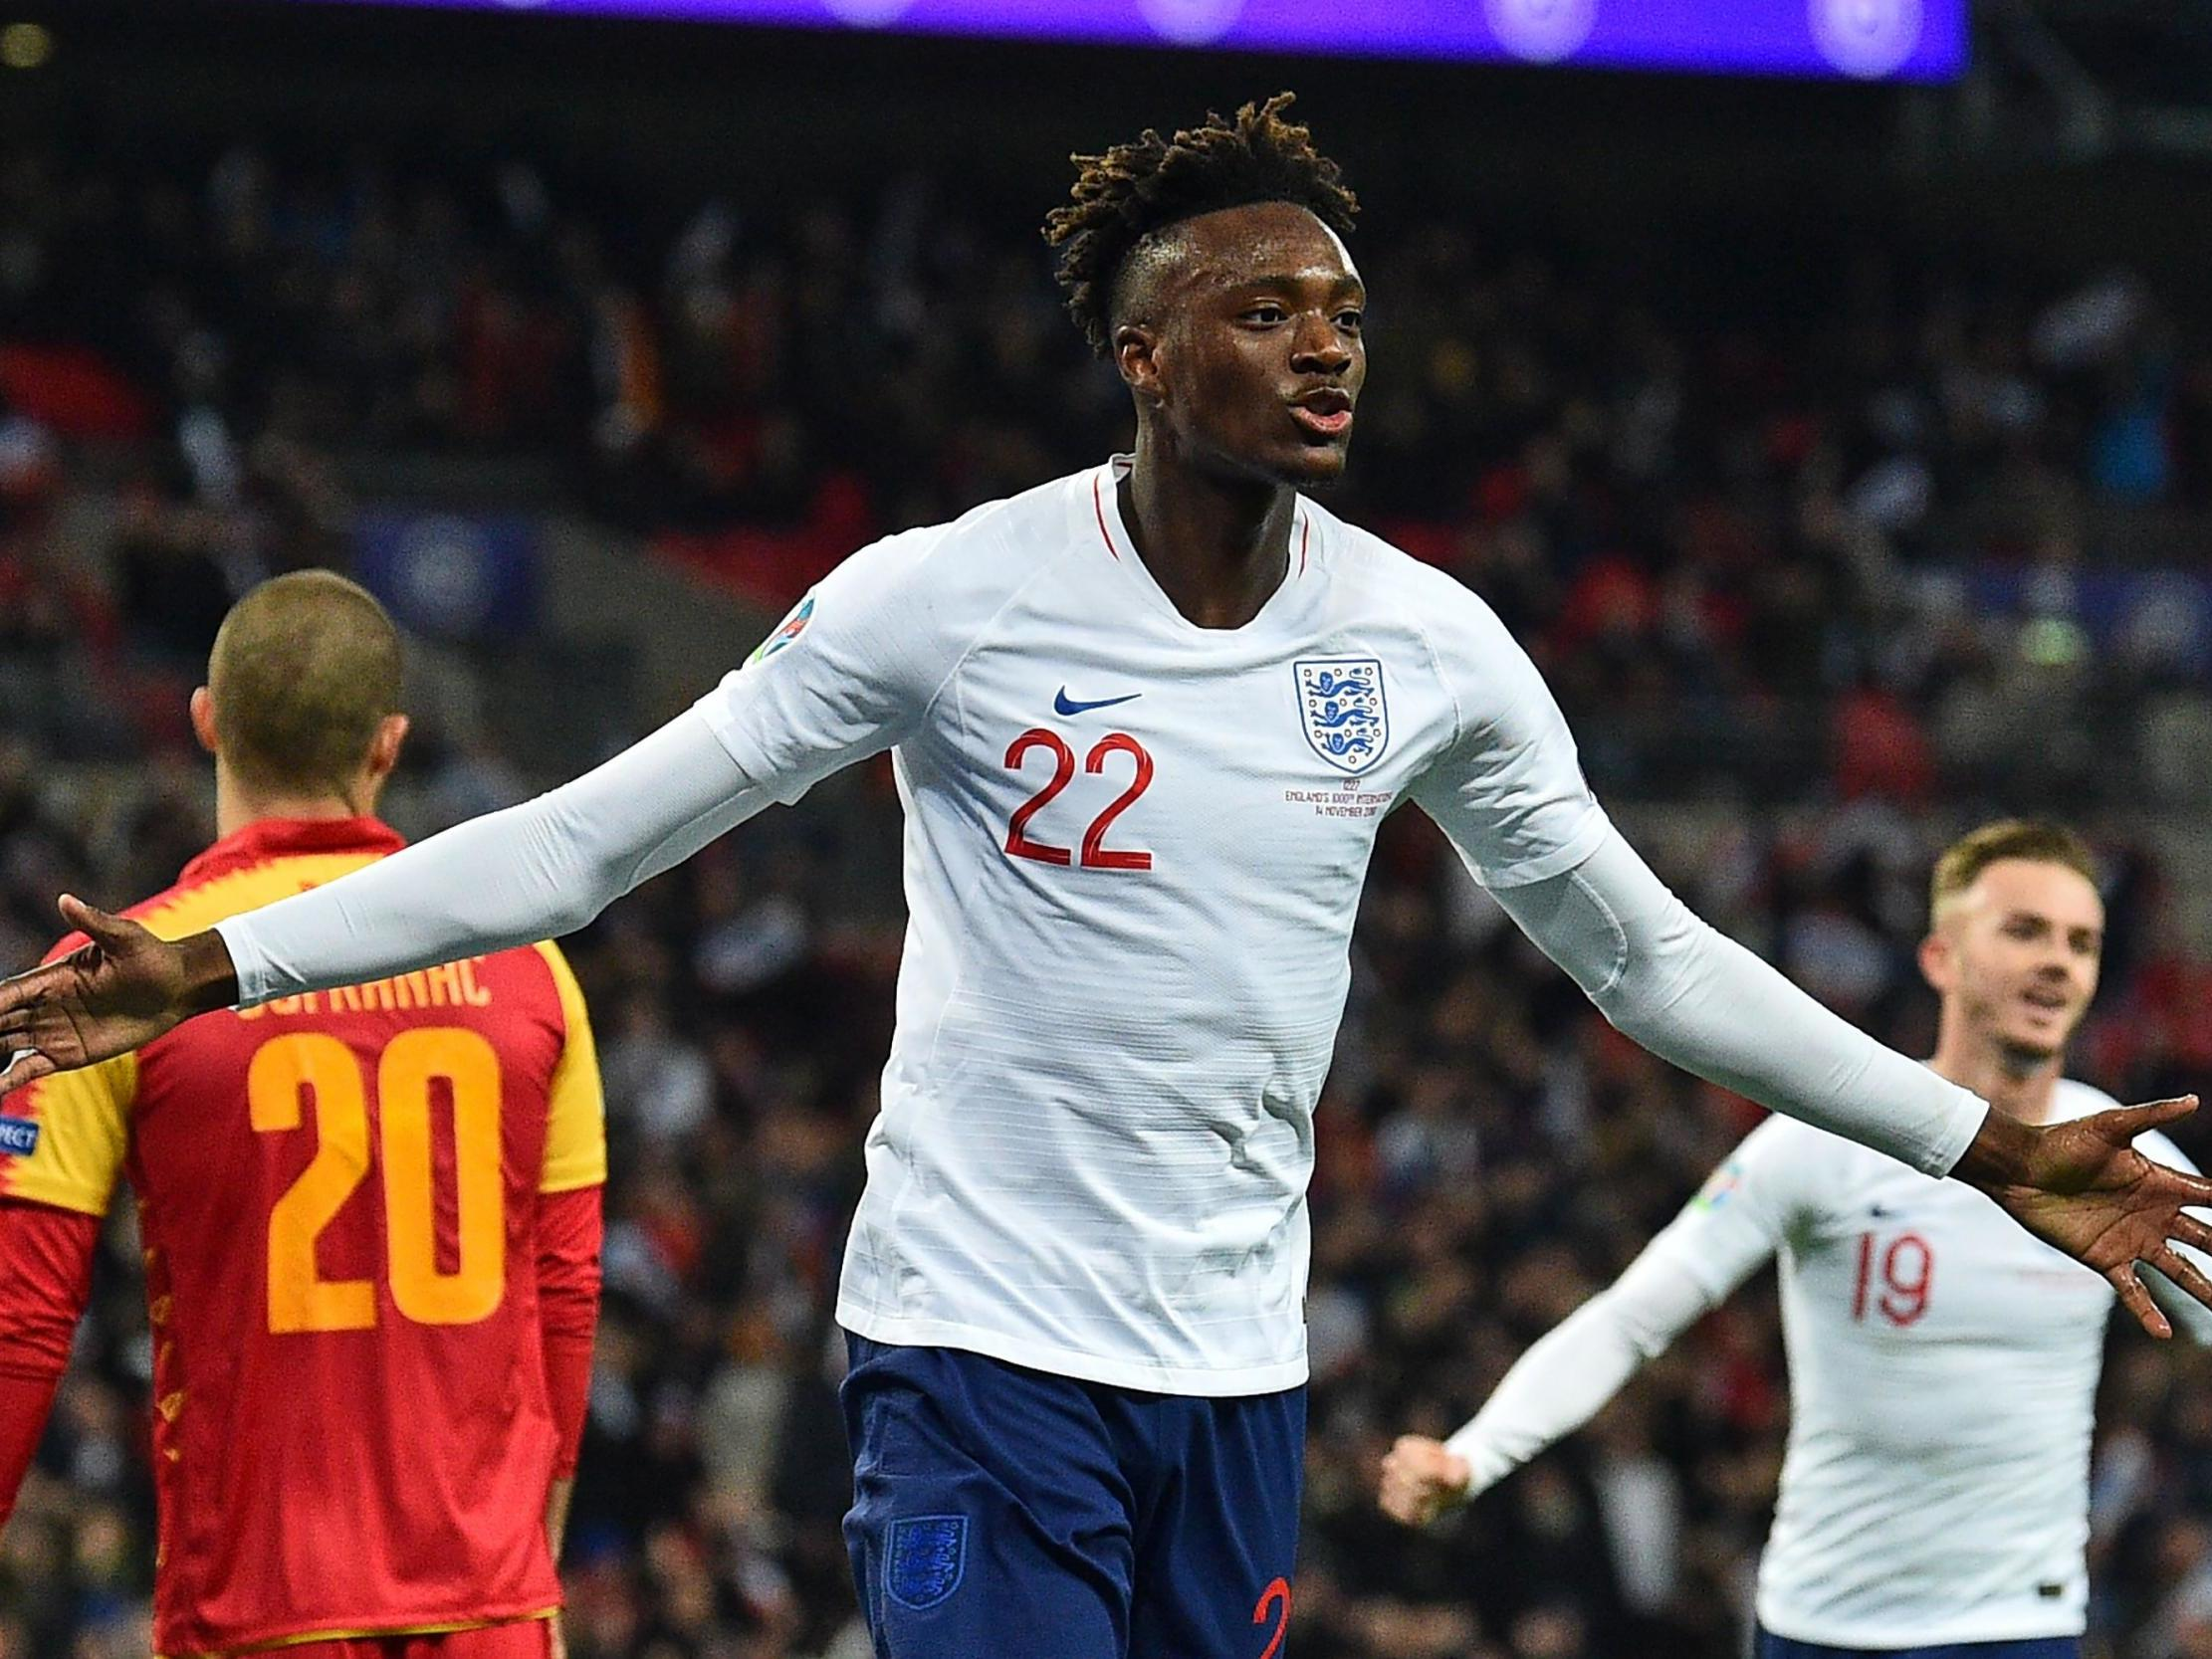 Tammy Abraham dreaming of Euro 2020 glory with England